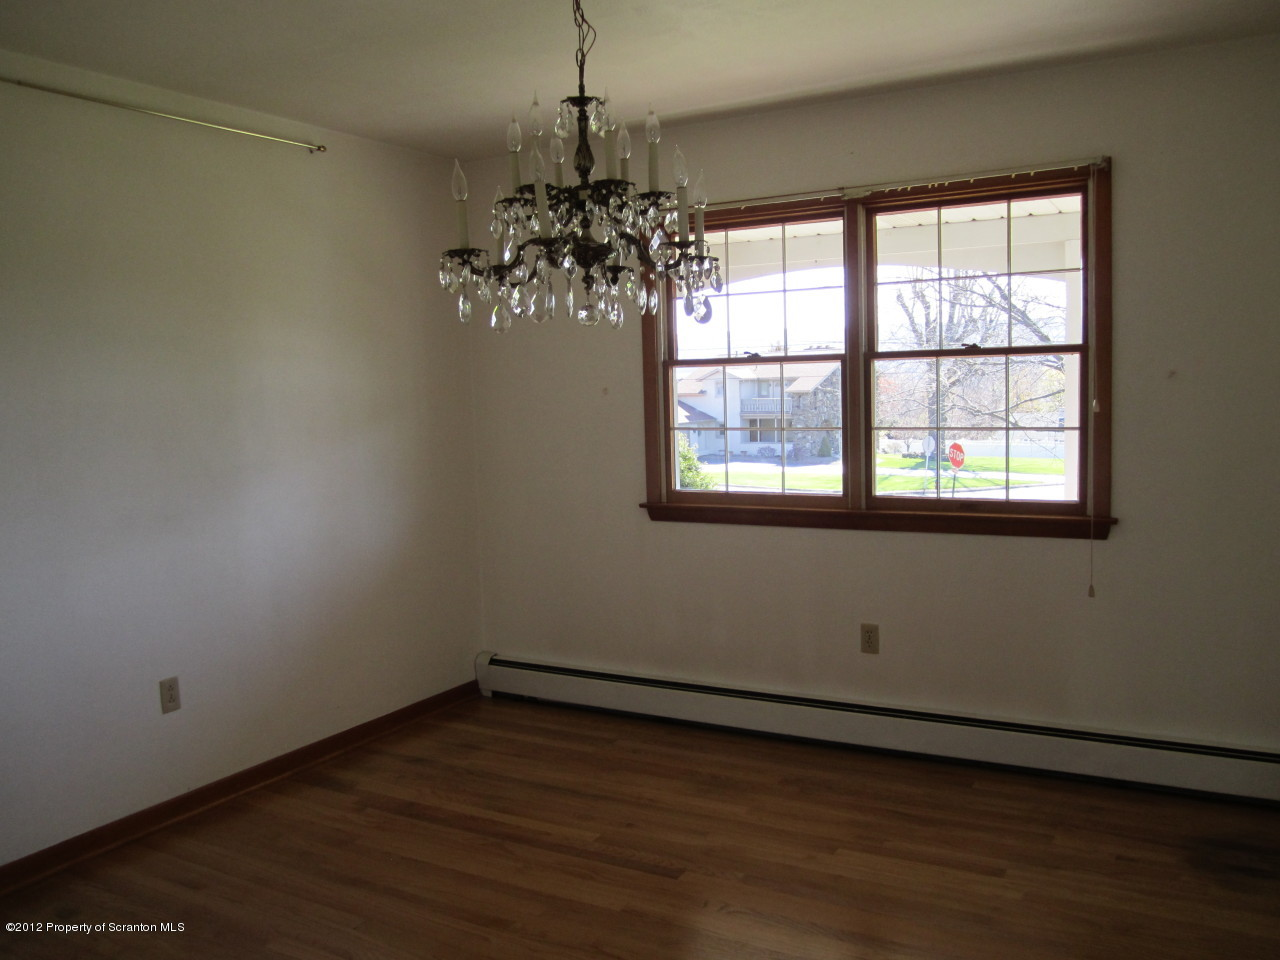 200 Kingsley Blvd., Peckville, Pennsylvania 18452, 5 Bedrooms Bedrooms, 9 Rooms Rooms,3 BathroomsBathrooms,Single Family,For Sale,Kingsley,12-1577